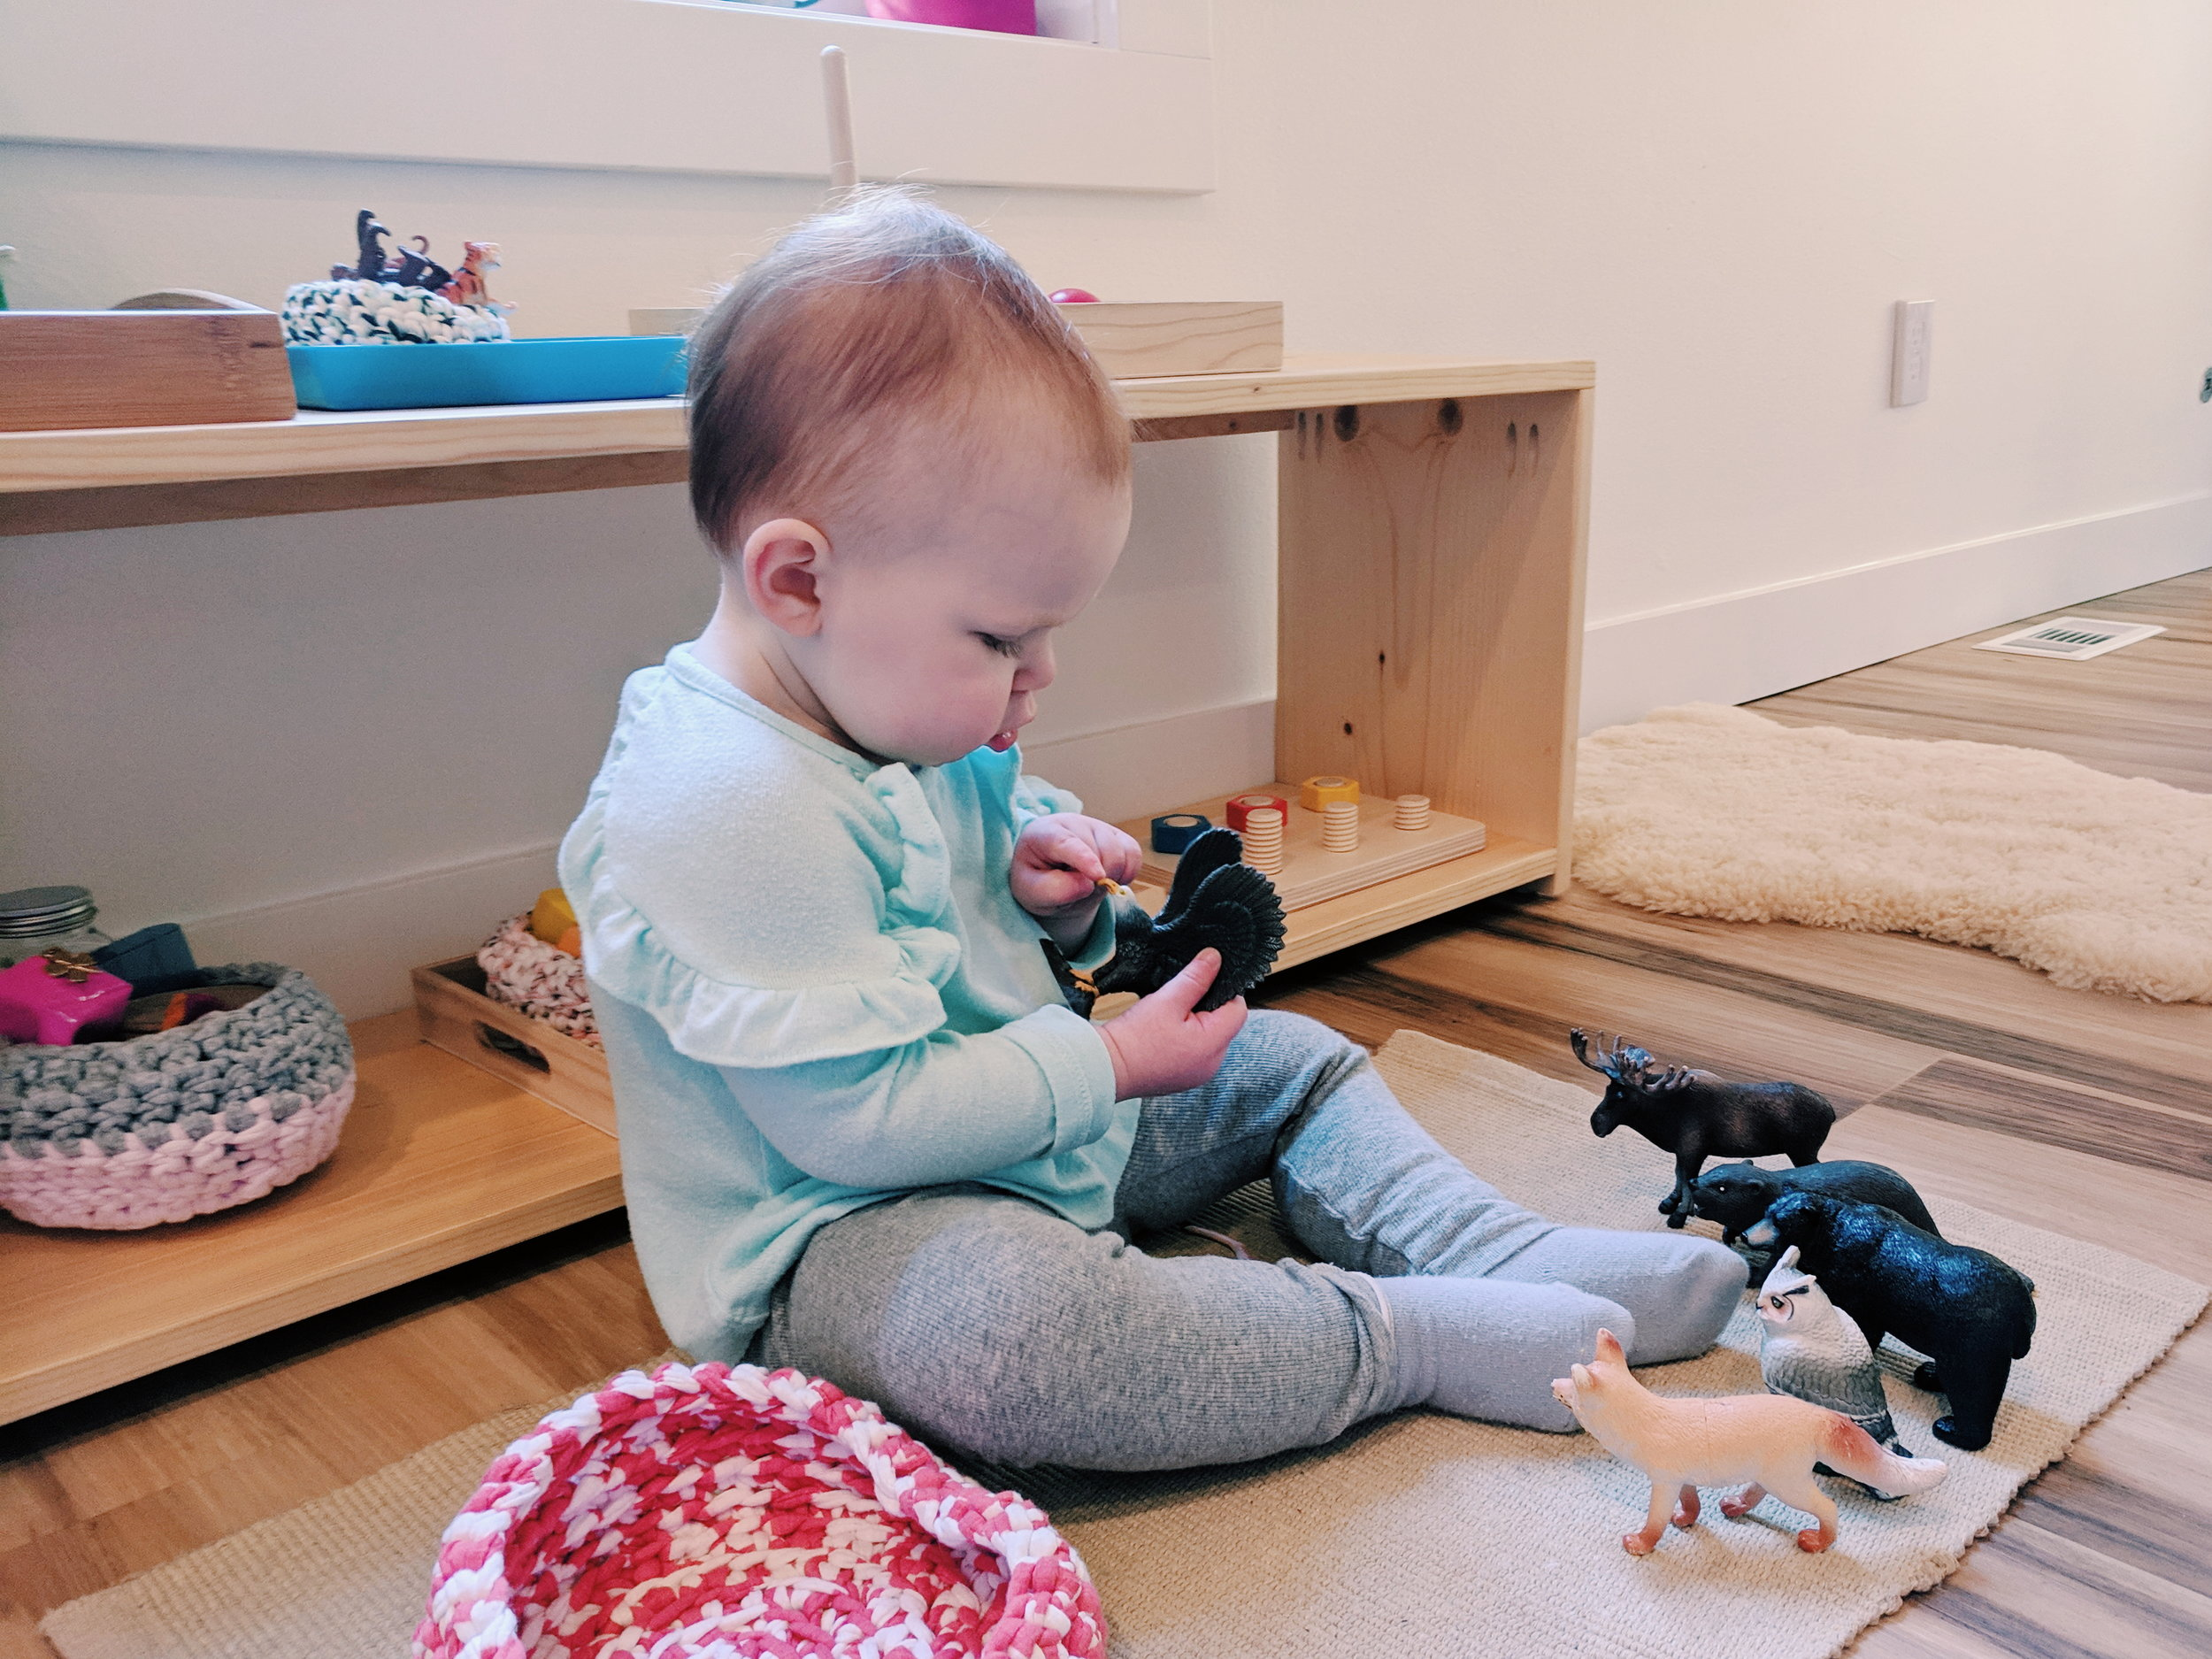 Giving Lessons - Montessori in Real Life